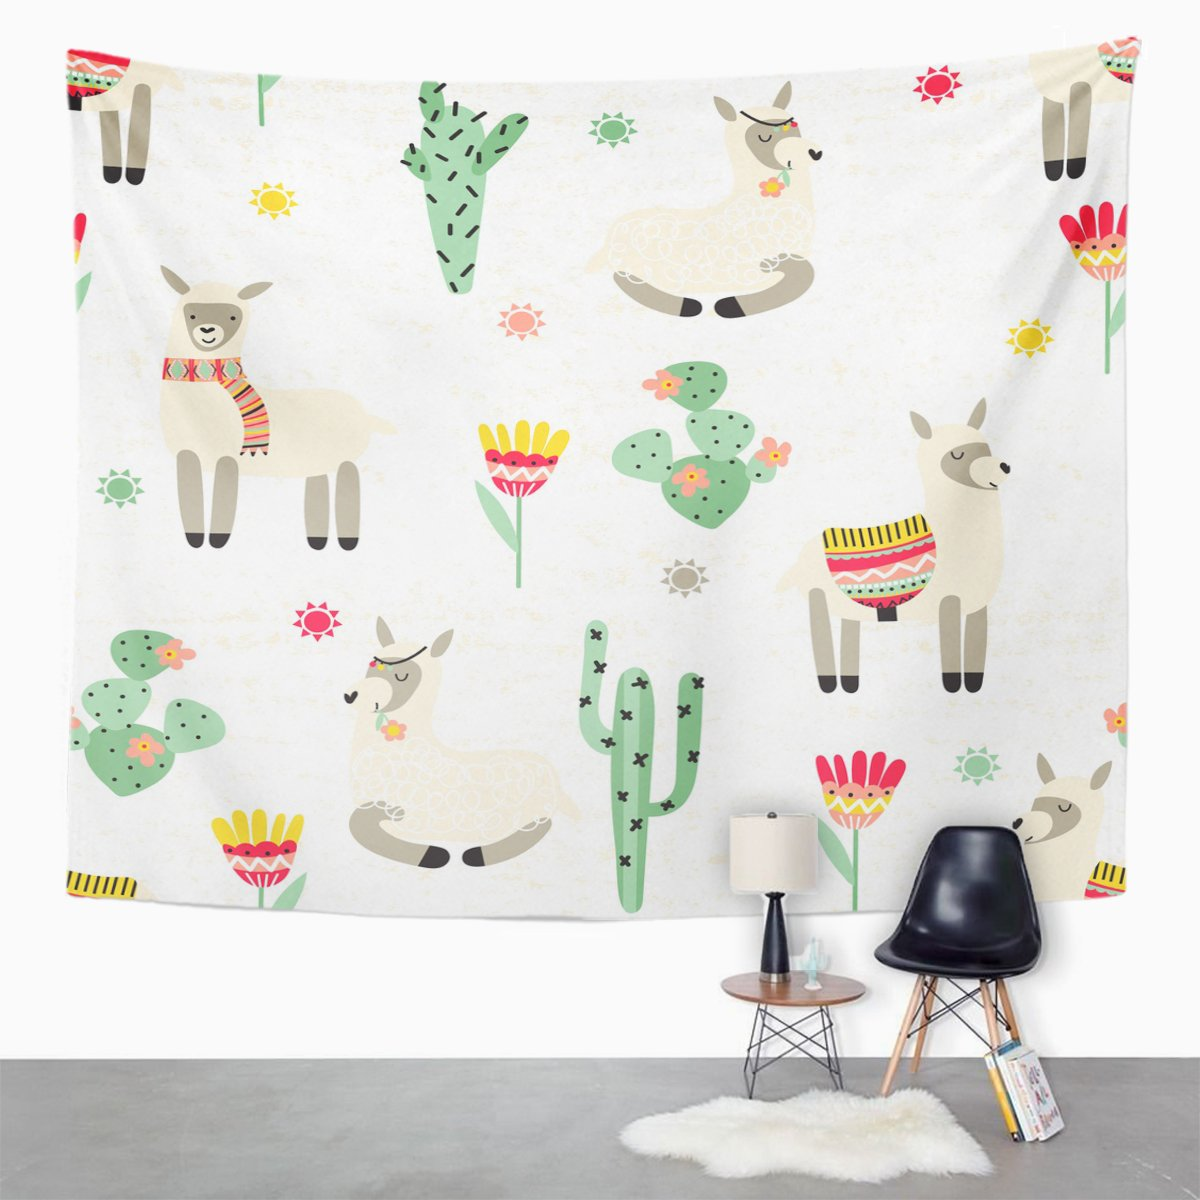 Emvency Tapestry Llama Alpaca South America's Lama and Cactus on Pattern Home Decor Wall Hanging for Living Room Bedroom Dorm 50x60 inches by Emvency (Image #2)